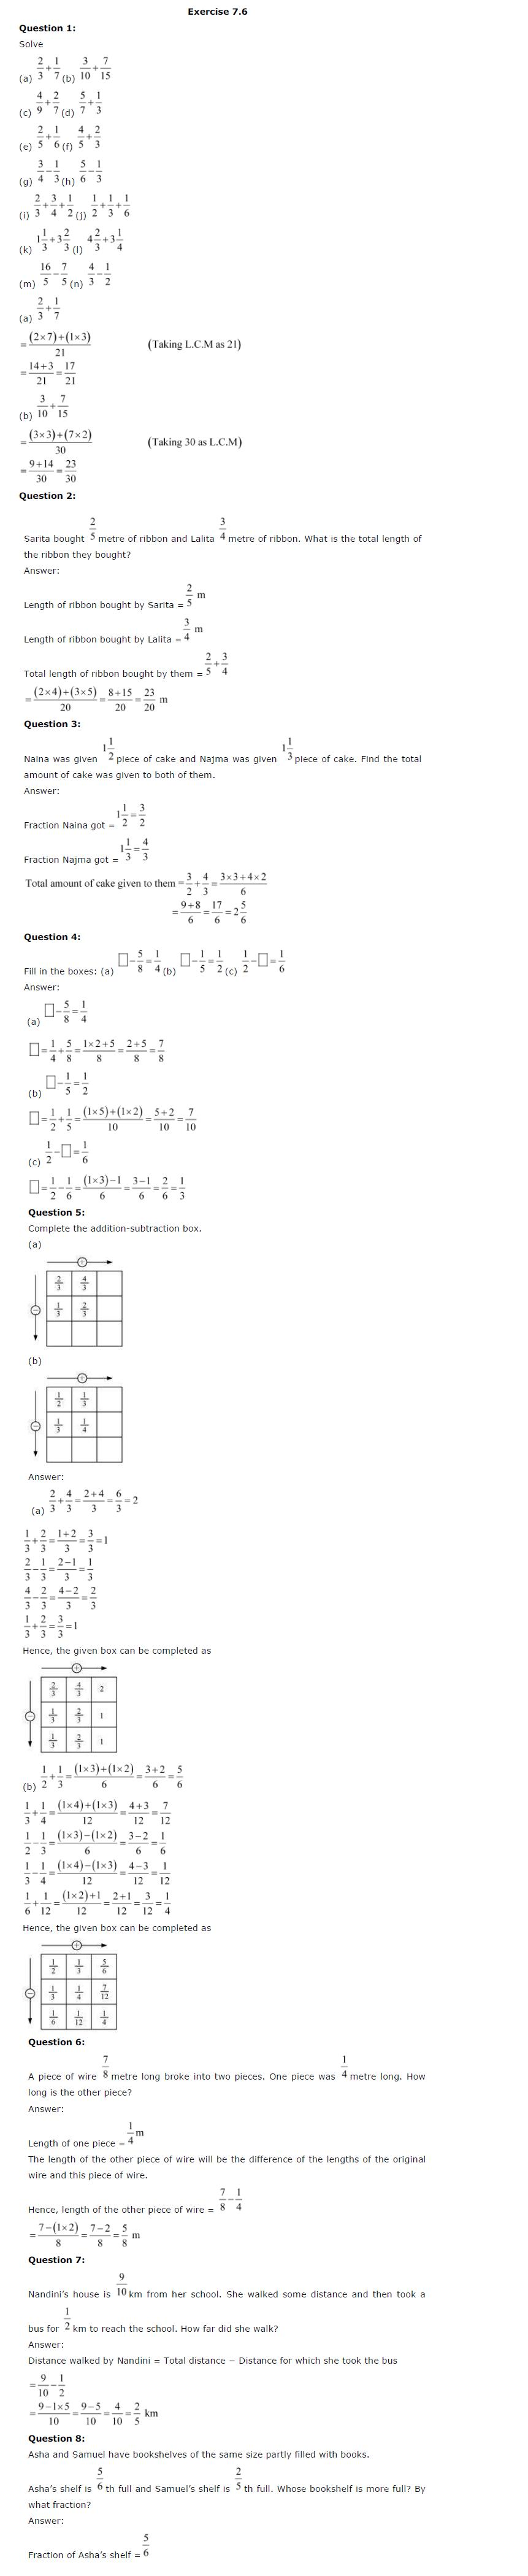 NCERT Solutions For Class 6th Maths Chapter 7 Fractions PDF Download Free 2018-19